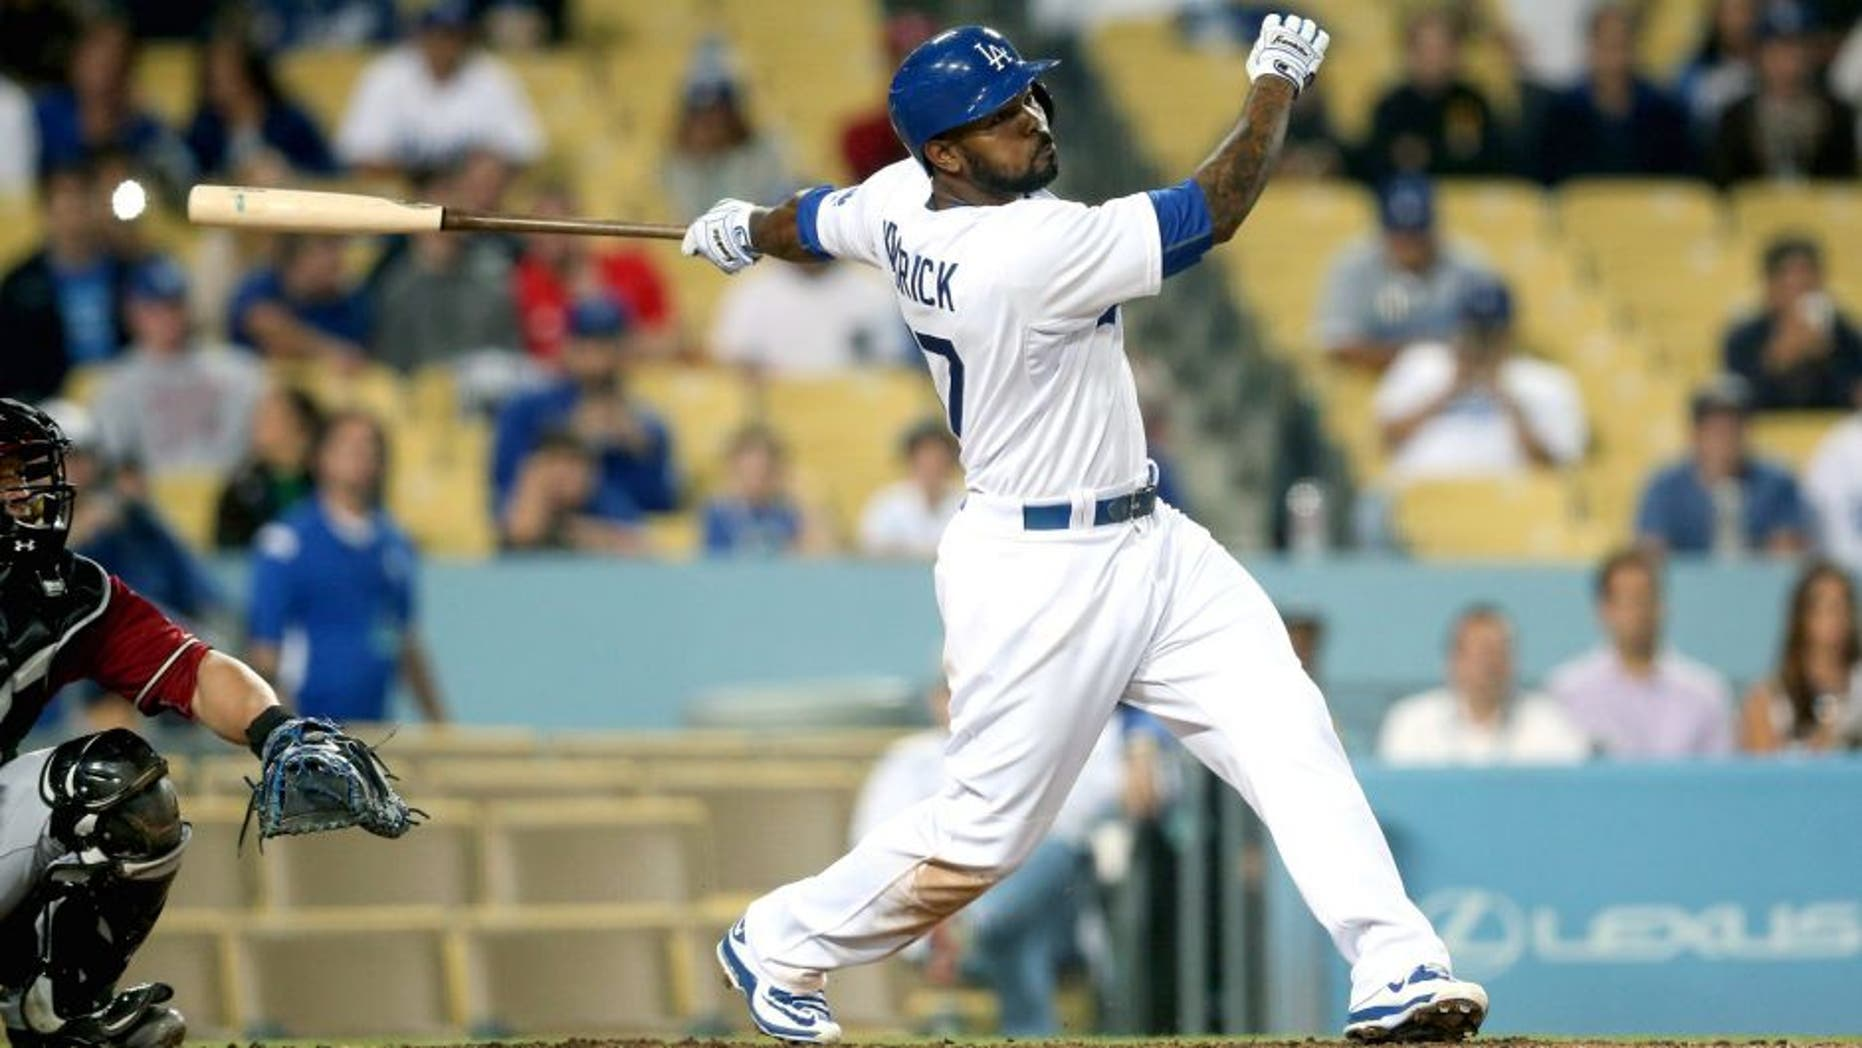 LOS ANGELES, CA - JUNE 10: Howie Kendrick #47 of the Los Angeles Dodgers hits a walk off single in the ninth inning against the Arizona Diamondbacks at Dodger Stadium on June 10, 2015 in Los Angeles, California. The Dodgers won 7-6. (Photo by Stephen Dunn/Getty Images)